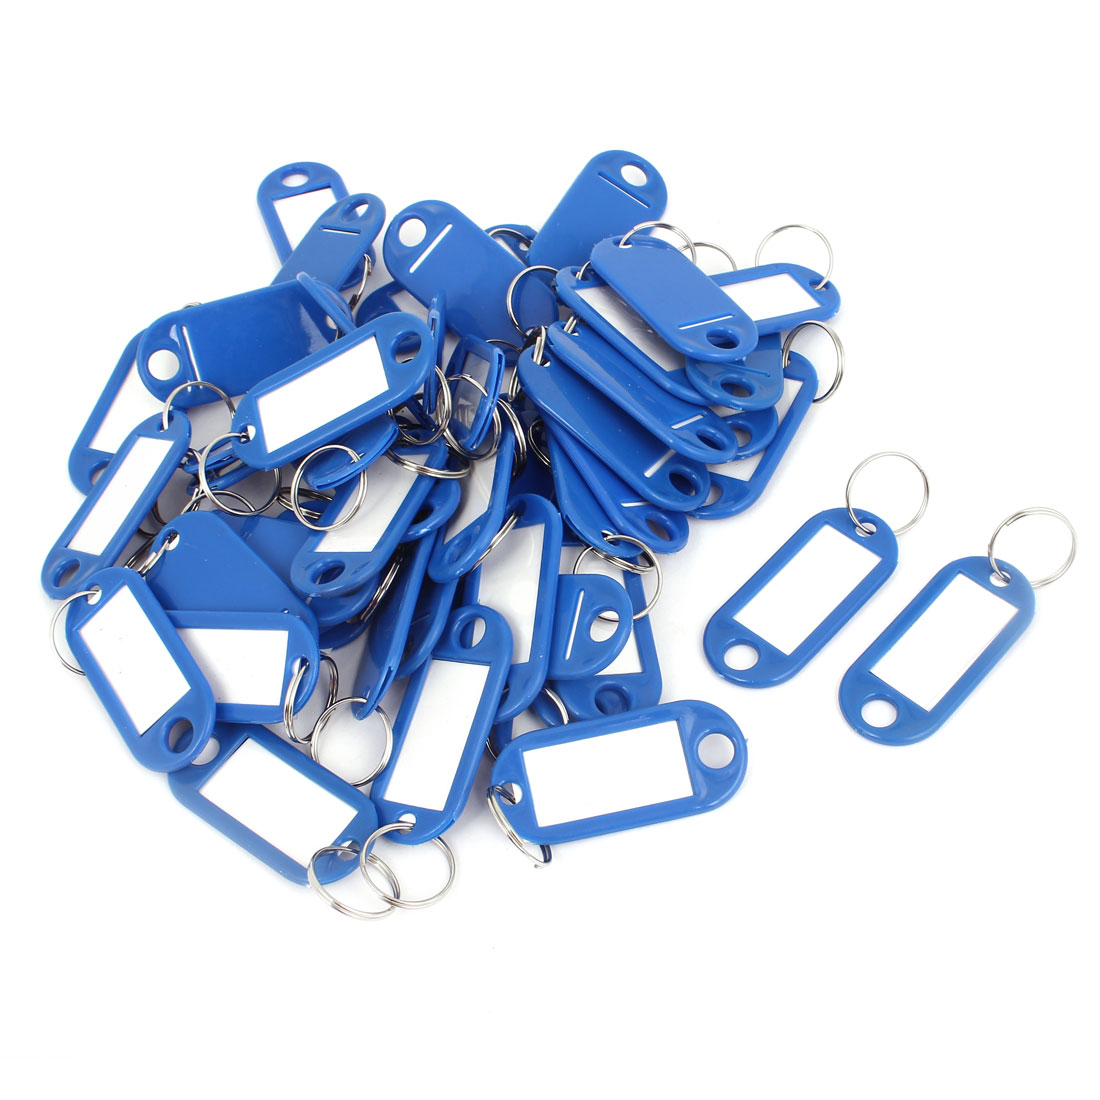 Unique Bargains 50pcs Blue Plastic Luggage Fobs ID Label Name Tag Badge Clip Holder Keyring